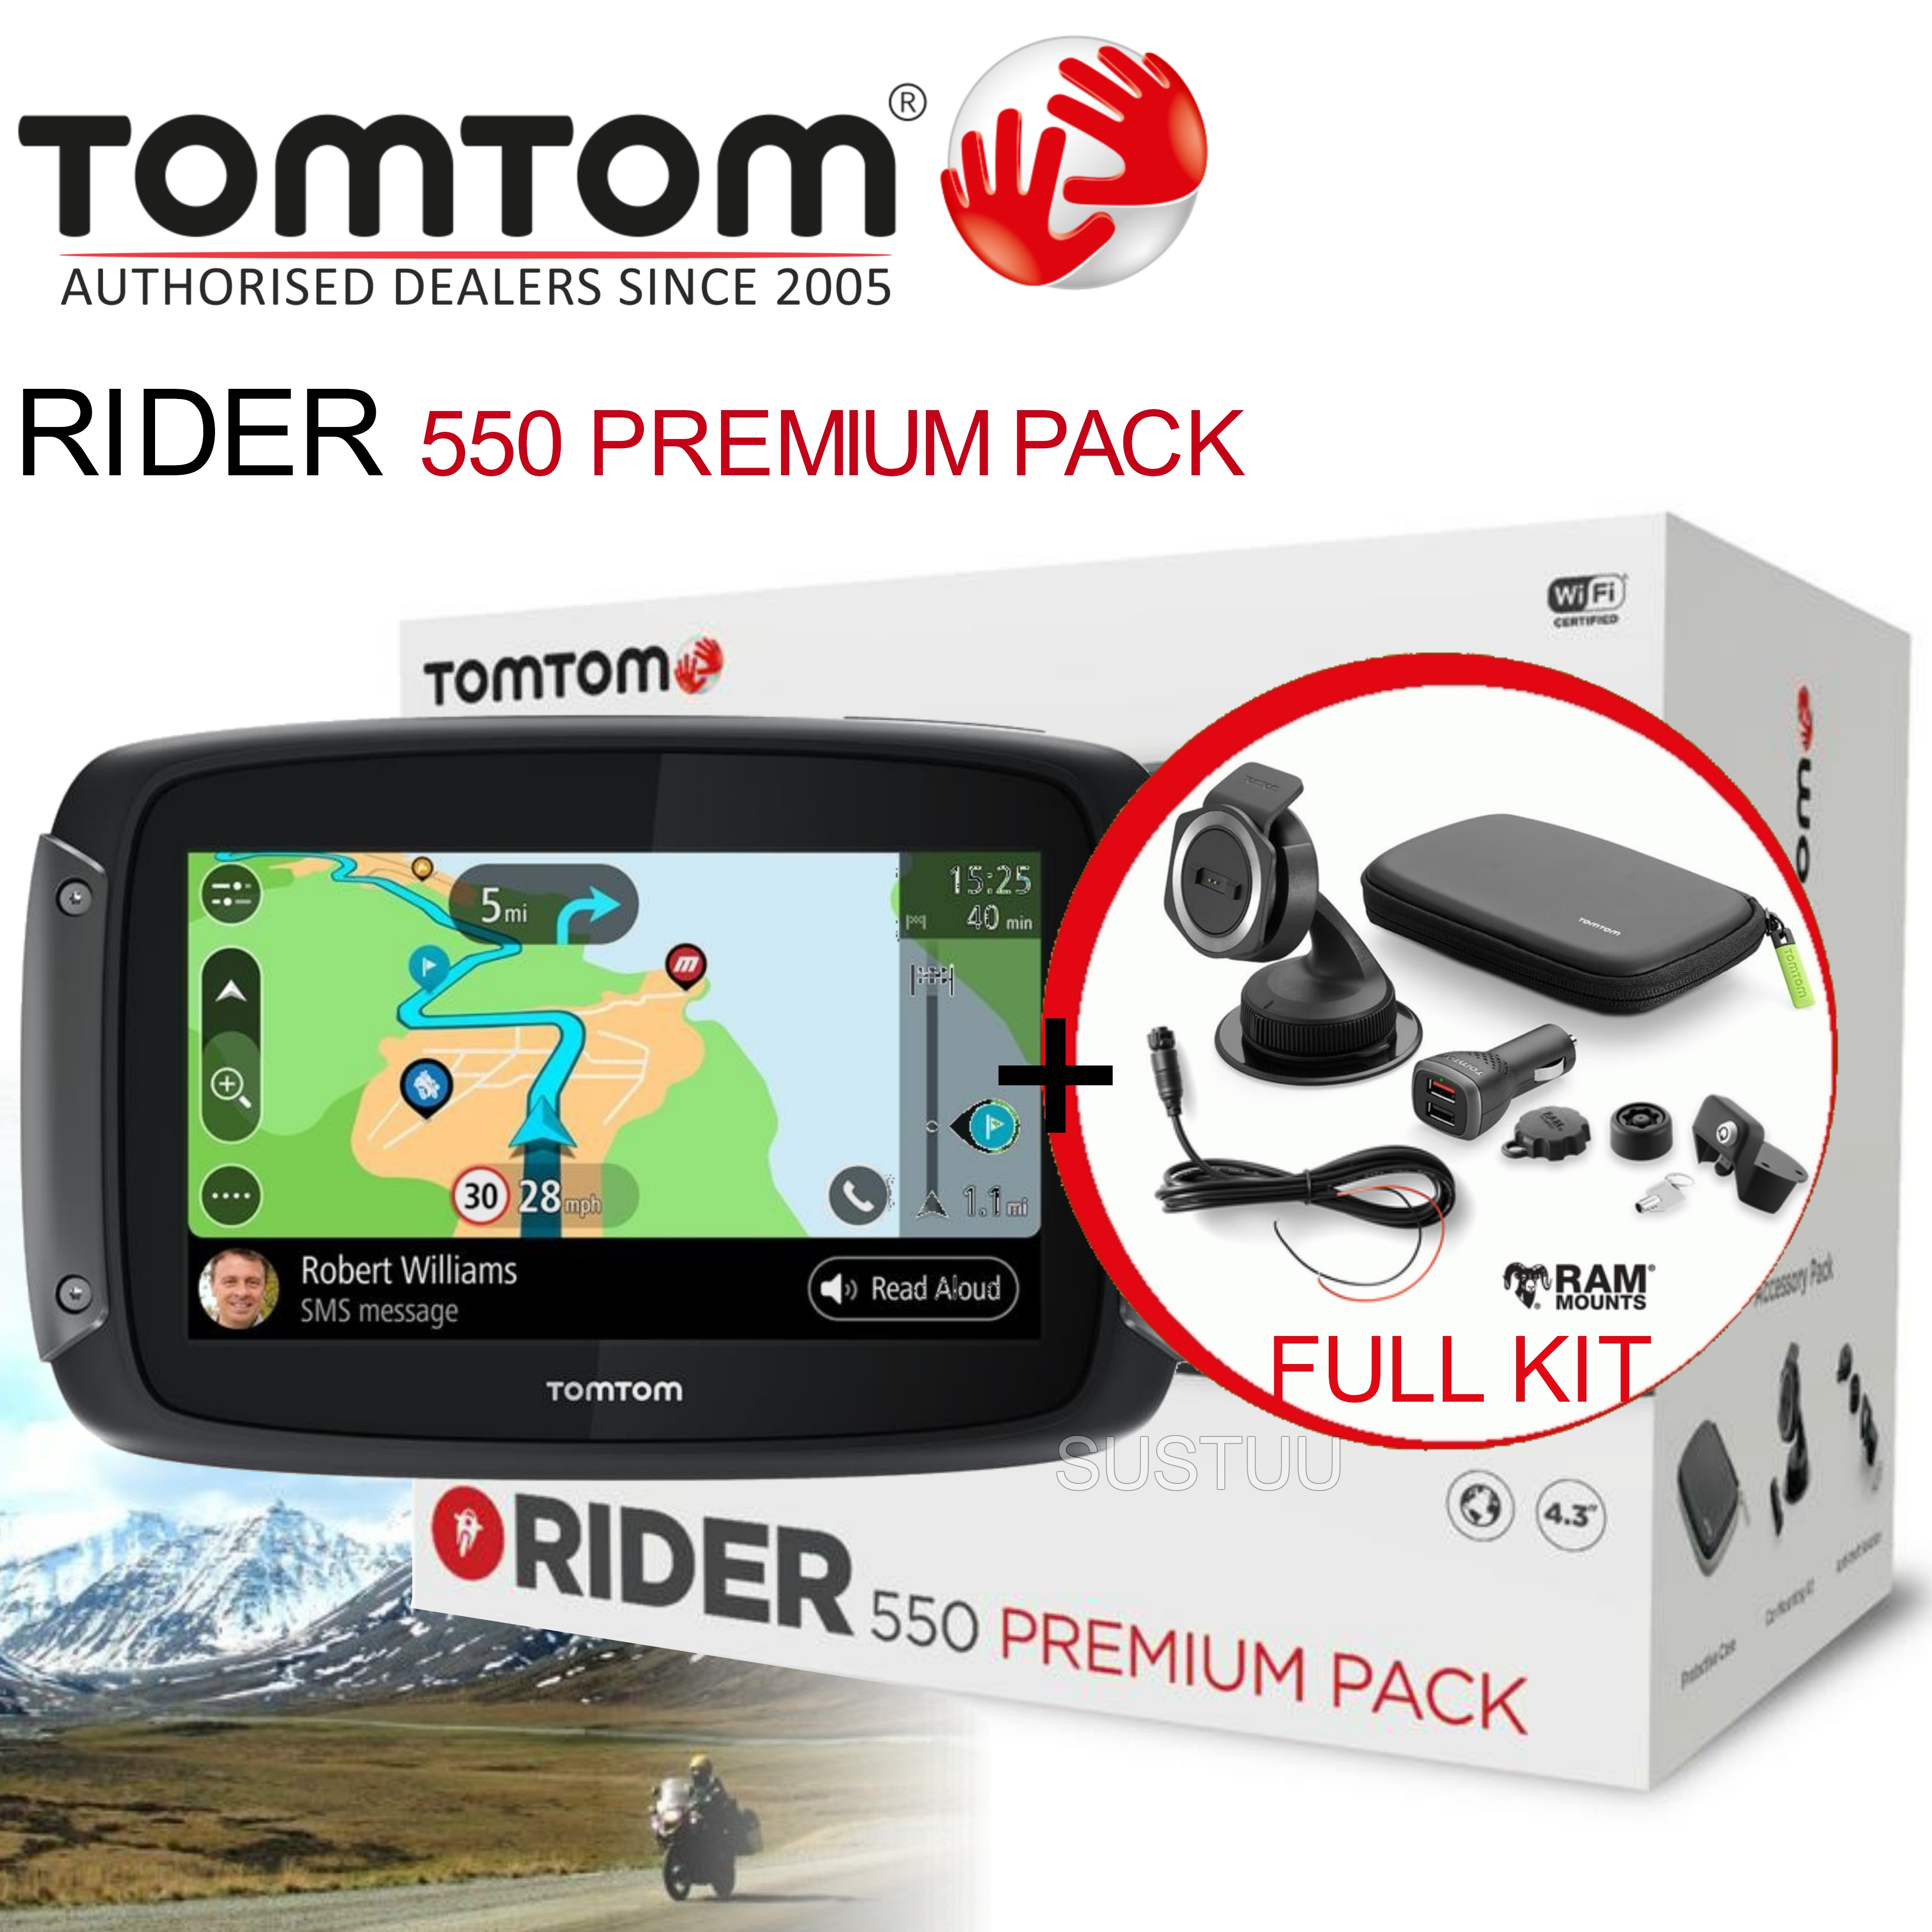 tomtom rider 450 premium gps satnav motorcycle lifetime. Black Bedroom Furniture Sets. Home Design Ideas